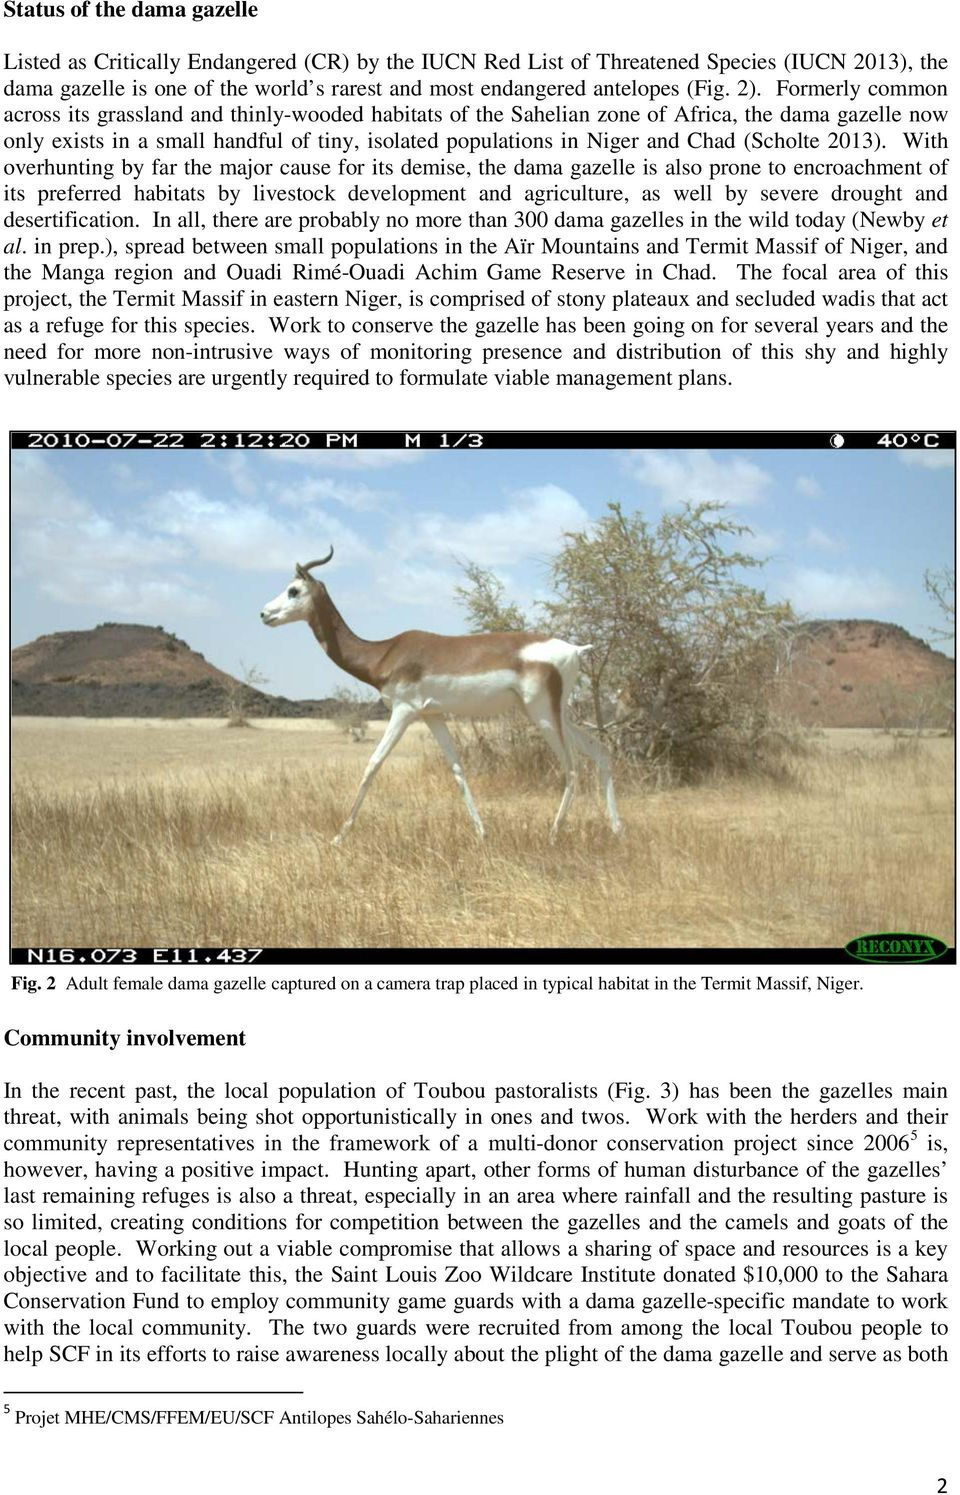 Formerly common across its grassland and thinly-wooded habitats of the Sahelian zone of Africa, the dama gazelle now only exists in a small handful of tiny, isolated populations in Niger and Chad